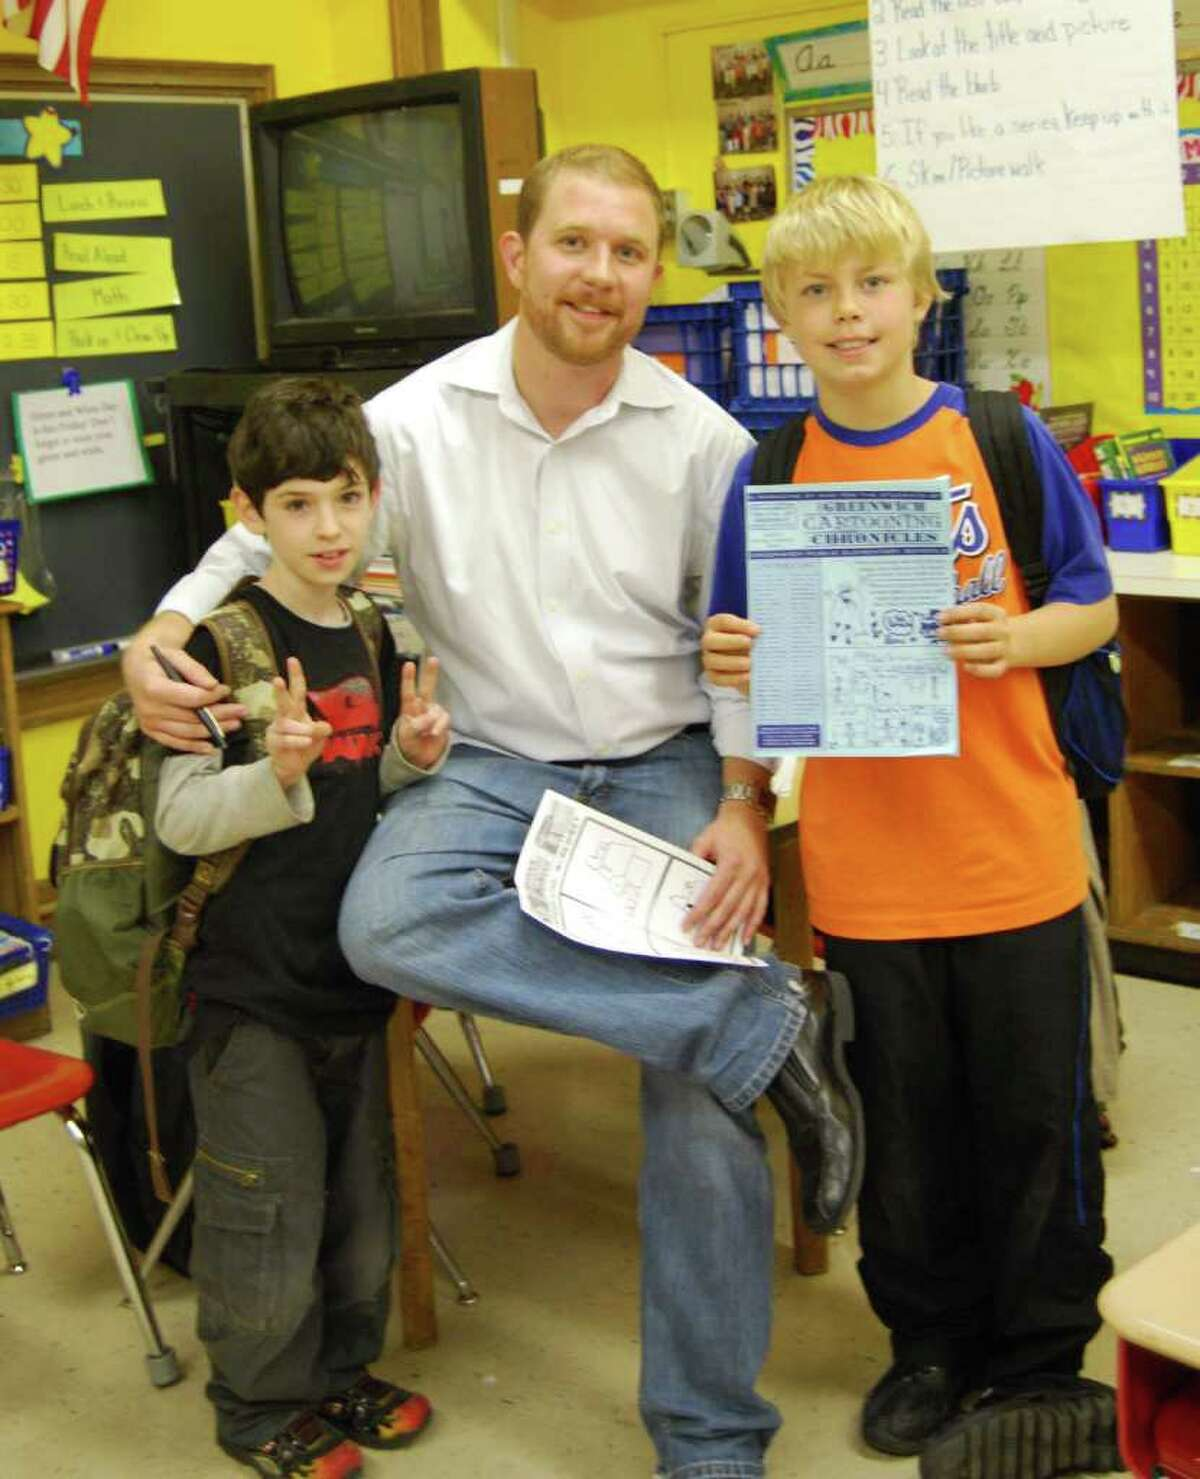 Phil Lohmeyer poses with Julian Curtiss students Tim Catalano and Gavin Muir. Muir is holding a copy of the Greenwich Cartooning Chronicles, which is produced by the students in Lohmeyer's cartooning class.